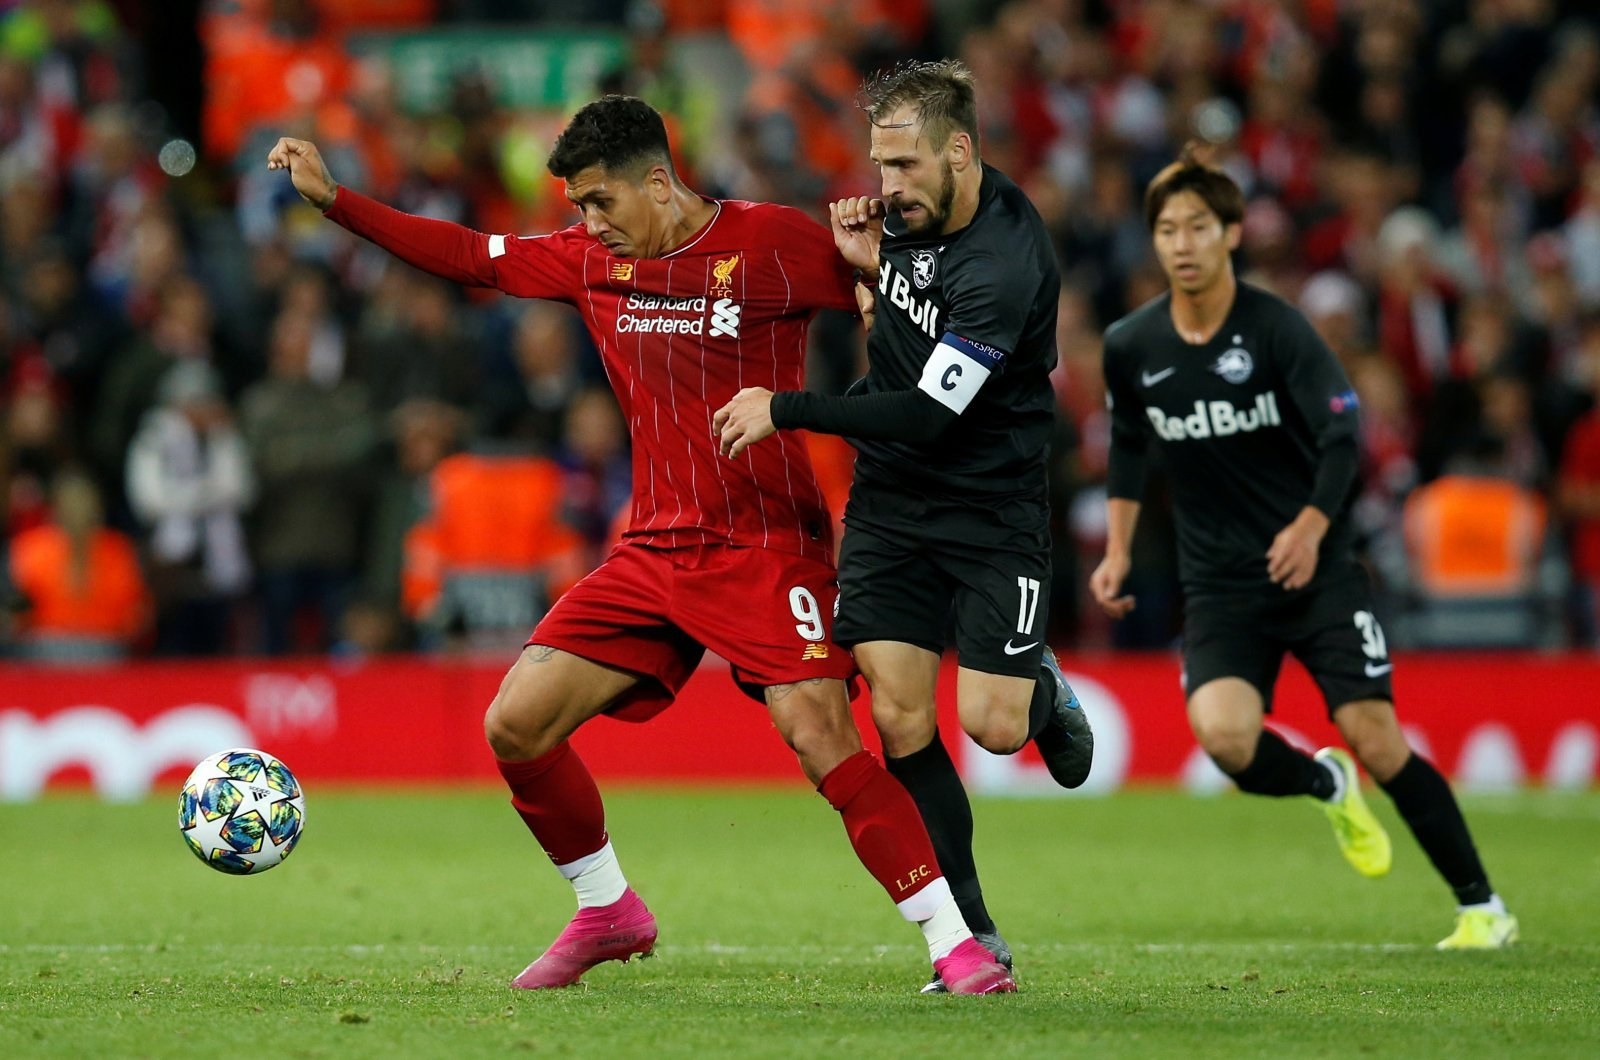 Unsung Hero: Roberto Firmino once again quietly influential as Liverpool edge RB Salzburg